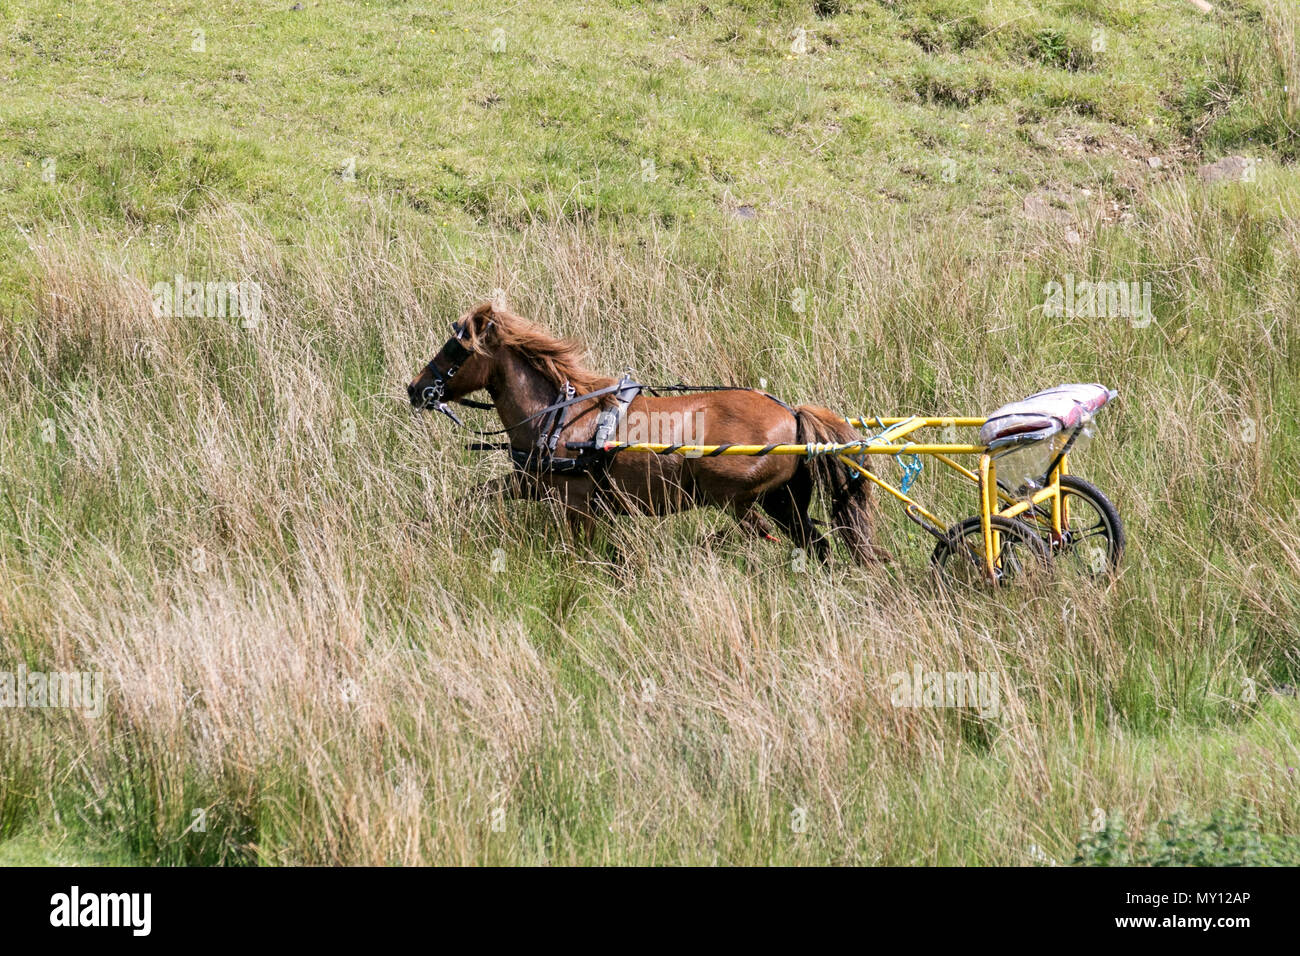 Kirkby Stephen, Cumbria, UK. 5th June, 2018. Weather. 05/06/2018. Runaway horse, and rig as Members of the travelling community head for Appleby Horse Fair. The roads in Cumbria & the Yorkshire Dales provide grazing for their Cob Horses en-rout to their annual gathering. The horse fair is held each year in early June. It attracts about 10,000 Gypsies and Travellers and about 30,000 other people. Rather than an organised event with a set programme, it's billed as the biggest traditional Gypsy Fair in Europe, one that's like a big family get together. Credit: MediaWorldImas/AlamyLiveNews - Stock Image